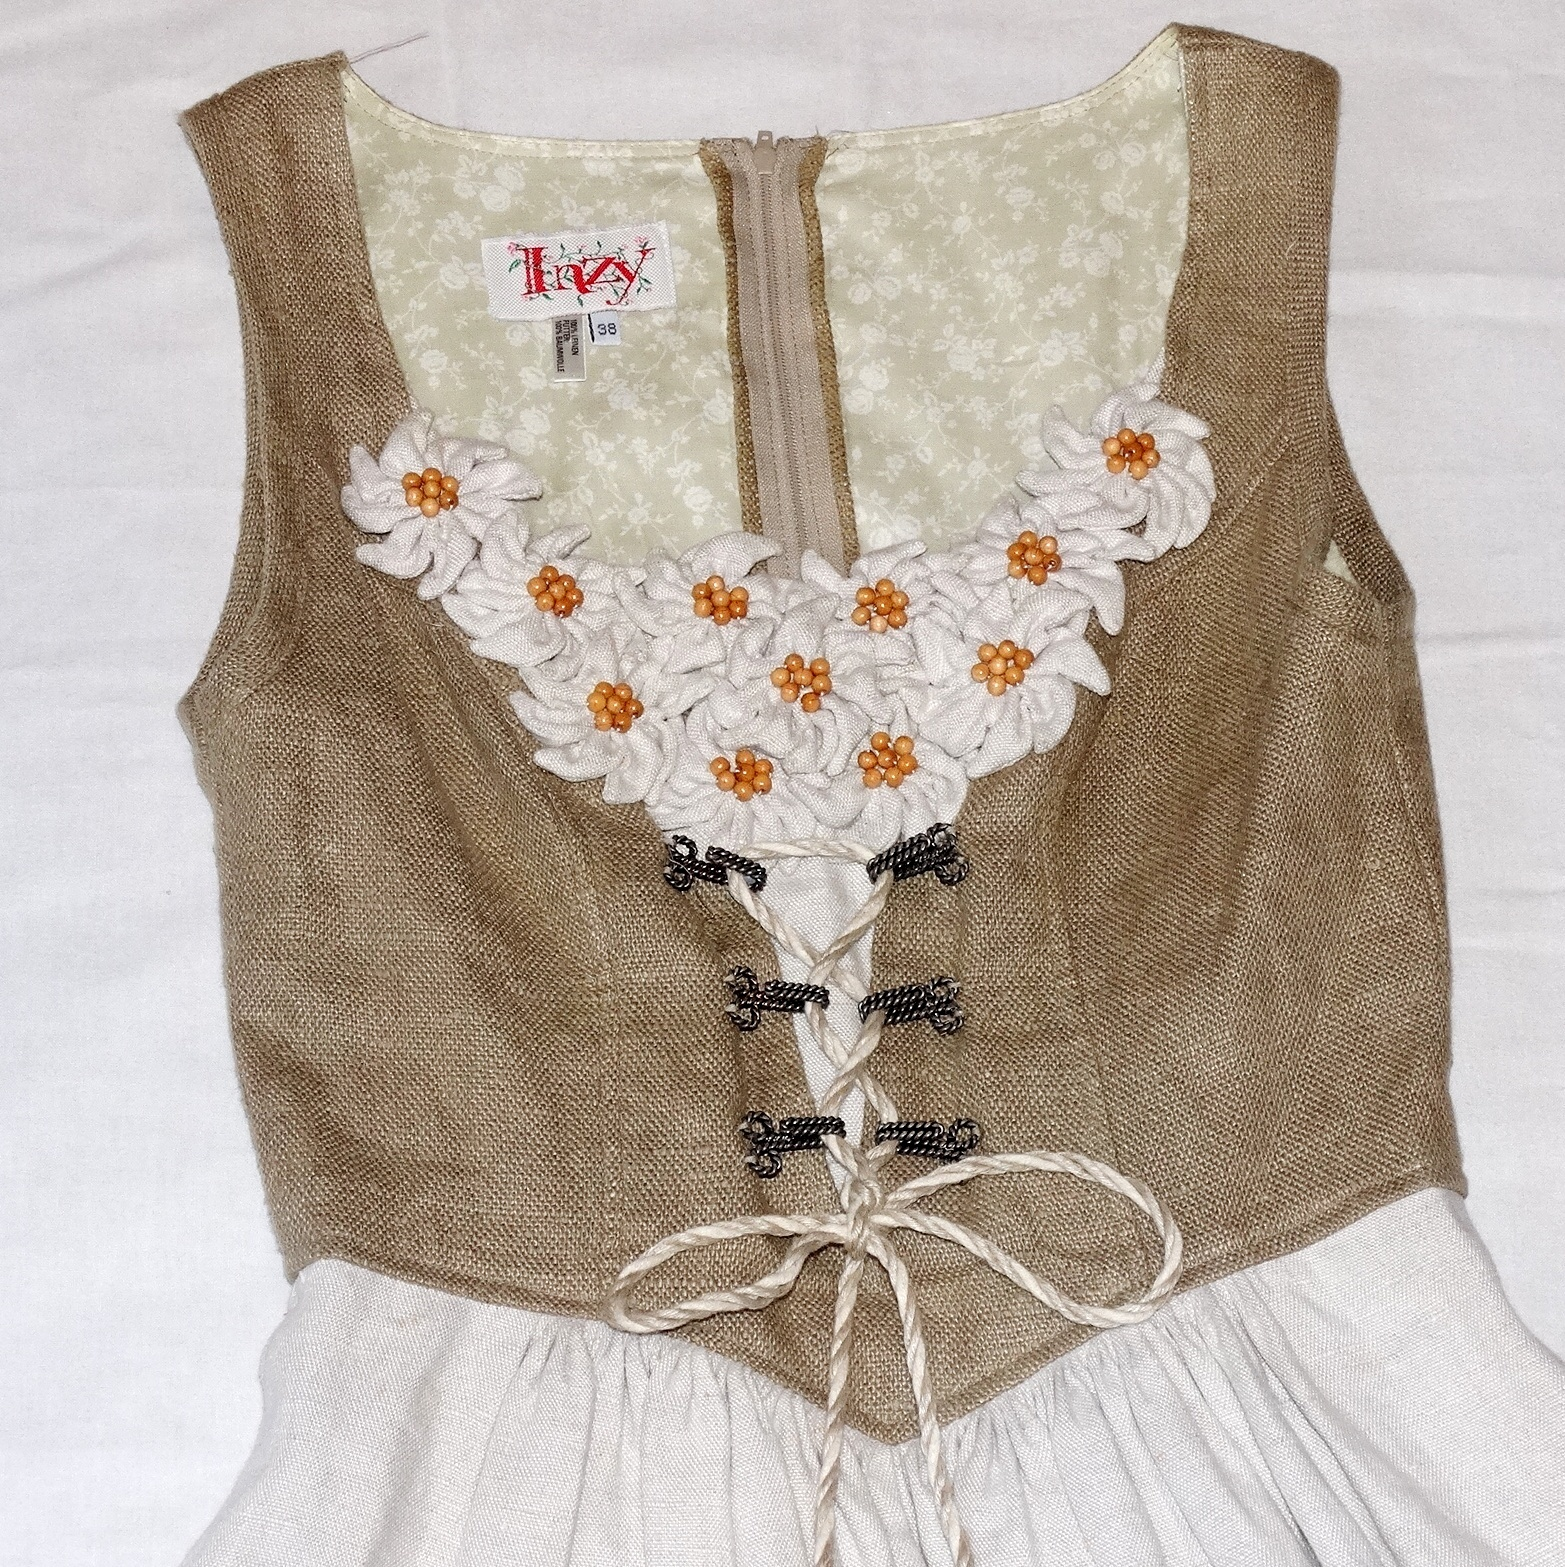 bc98b498135 DIRNDL AUS LEINEN MIT EDELWEISS-APPLIKATION. Vintage clothing   Accessories  - Auctionet